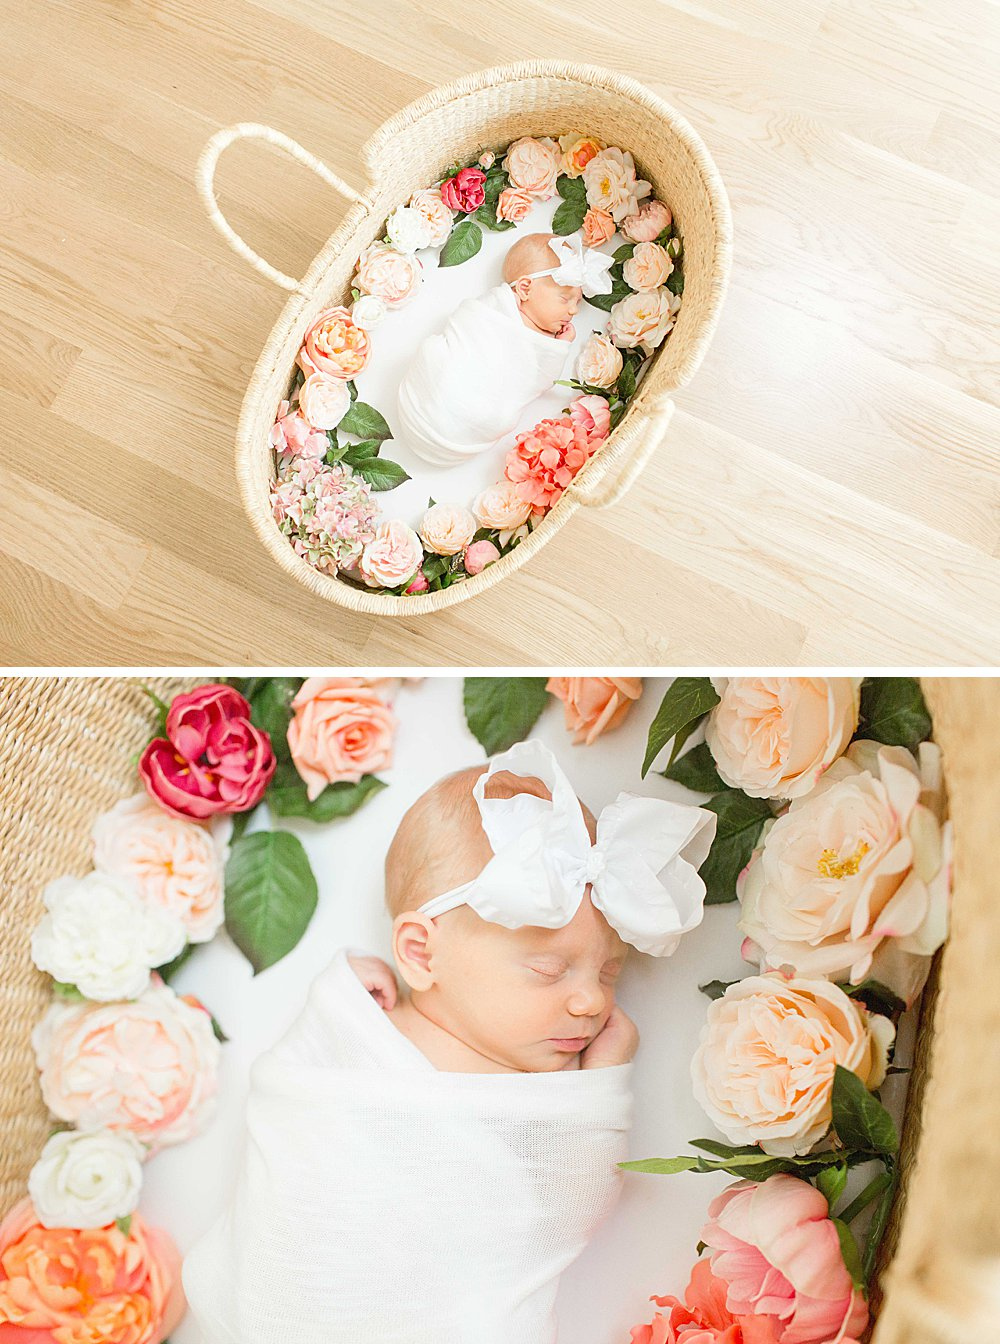 Newborn Photos I Baby girl in basket with flowers